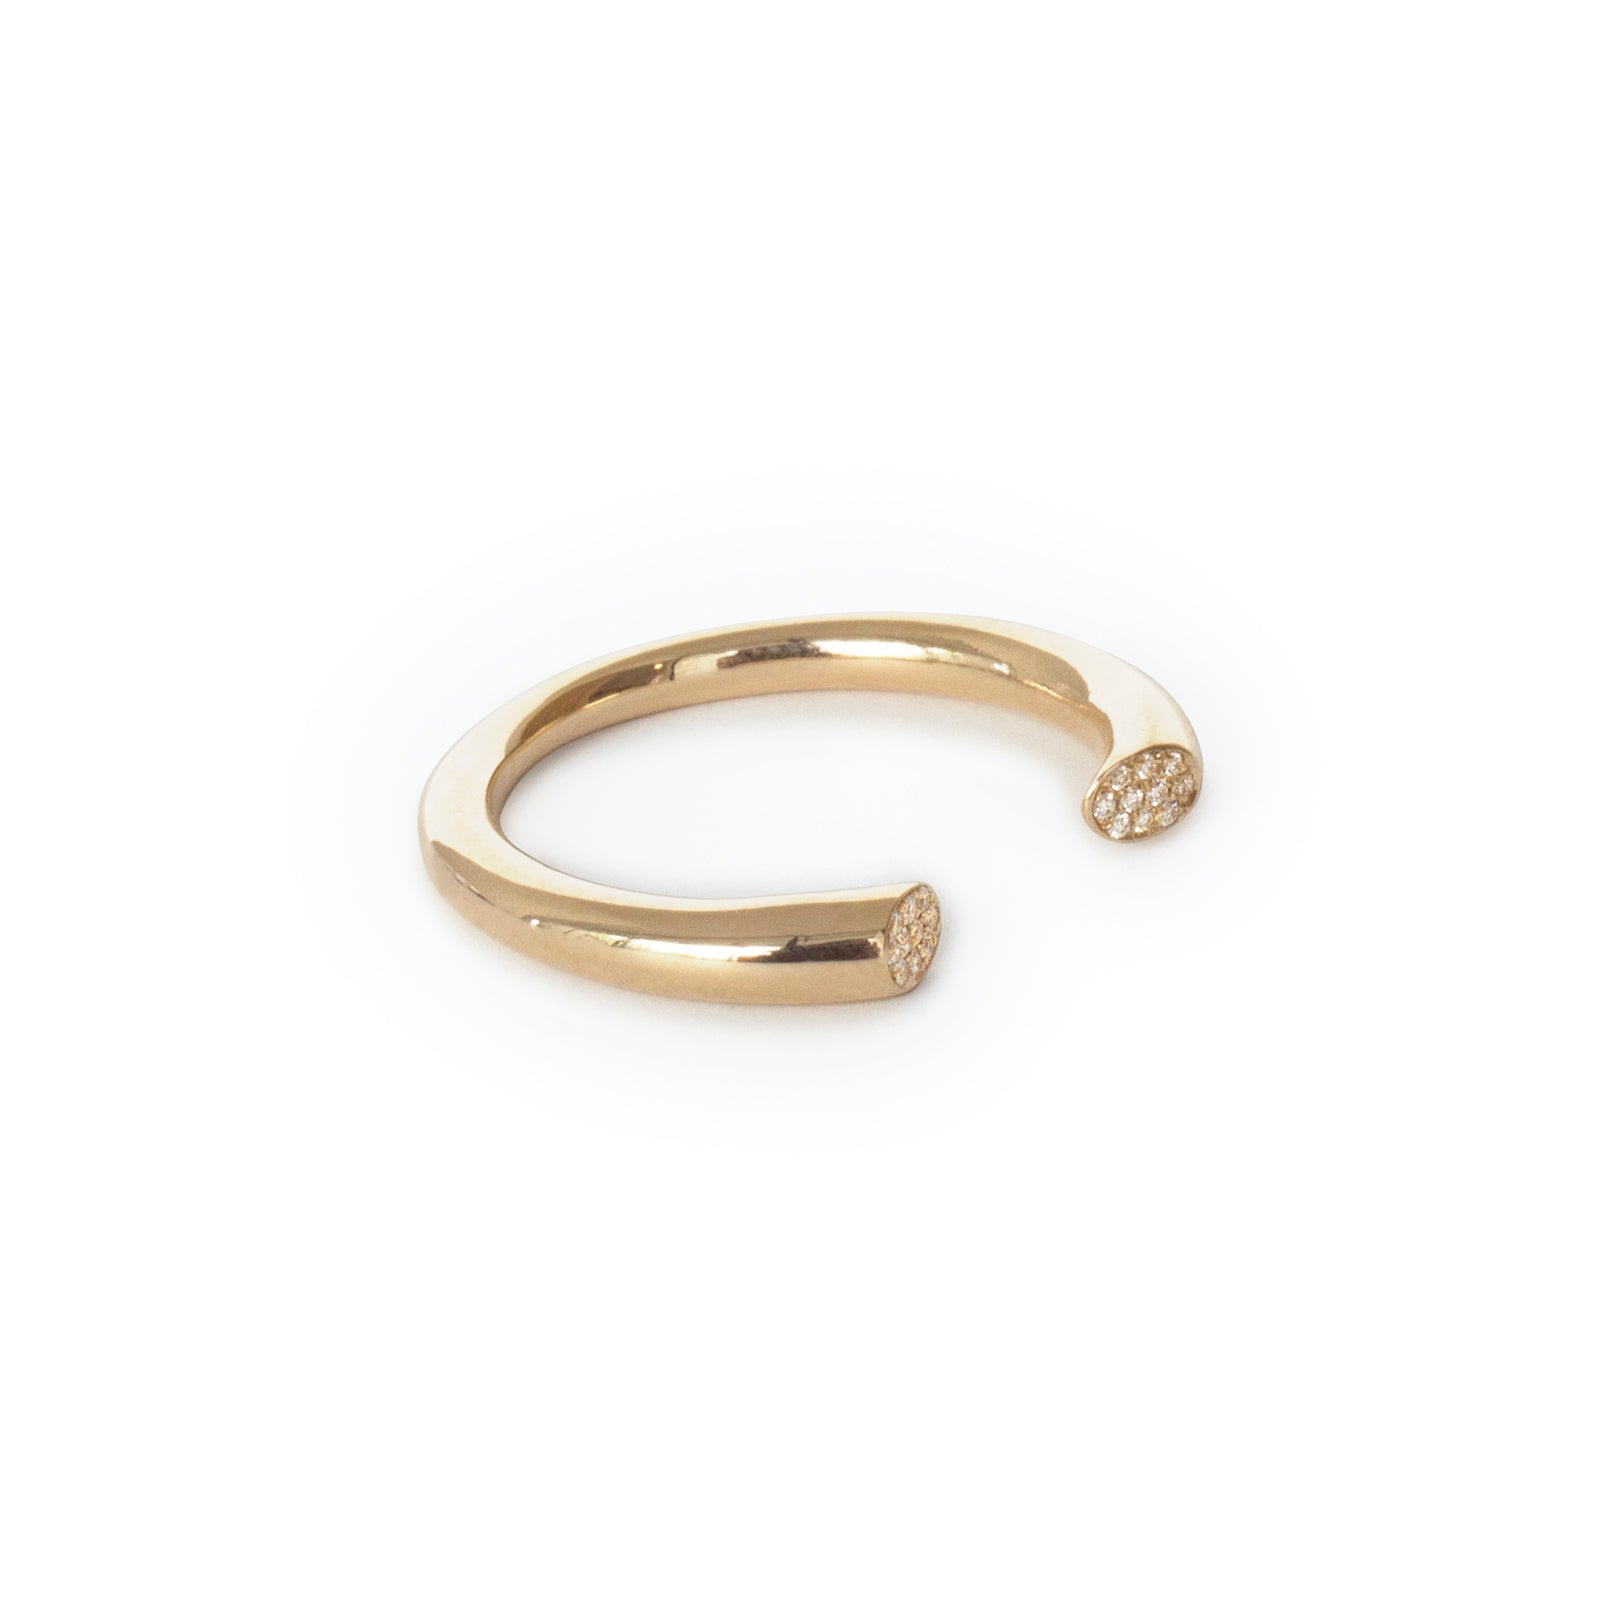 14k yellow gold w/white diamonds / thick / 6 arpent stacking rings with diamonds